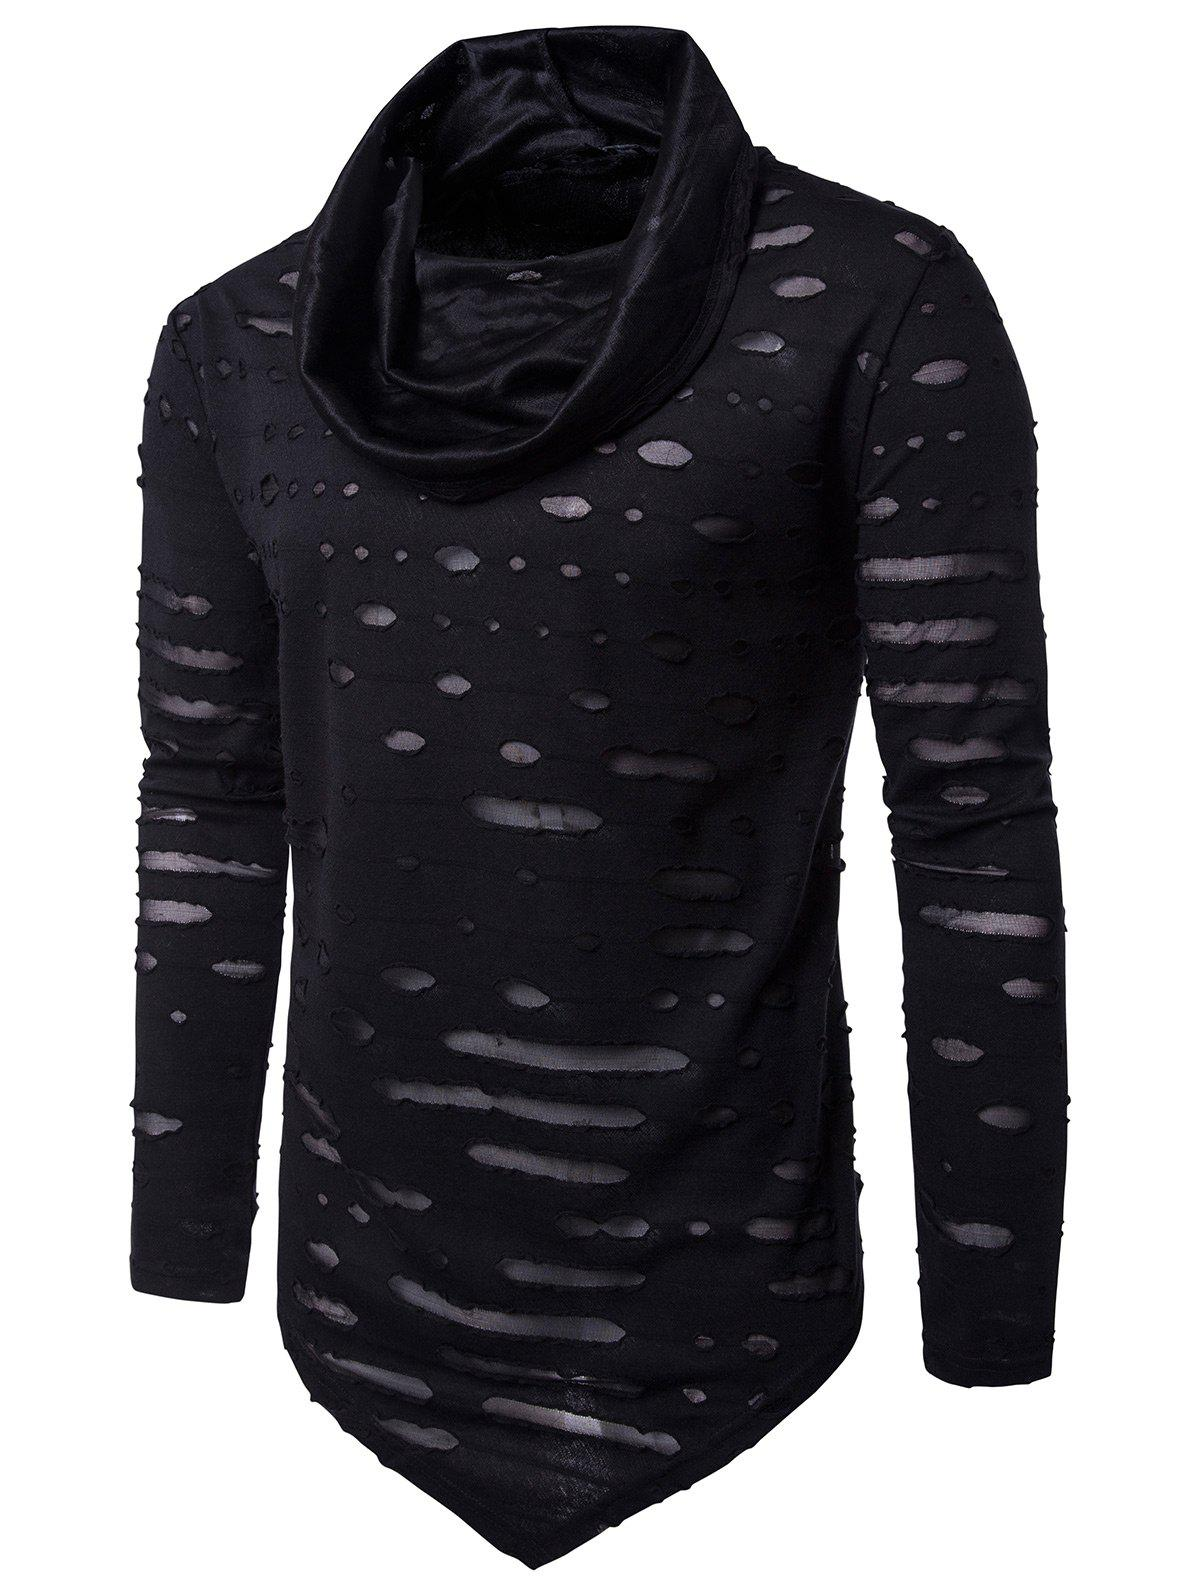 Distressed Triangle Bottom Asymmetric T-shirtMEN<br><br>Size: 2XL; Color: BLACK; Material: Cotton,Polyester; Sleeve Length: Full; Collar: Cowl Neck; Style: Fashion,Punk,Rock; Embellishment: Hole; Pattern Type: Solid; Weight: 0.2935kg; Package Contents: 1 x T-shirt;